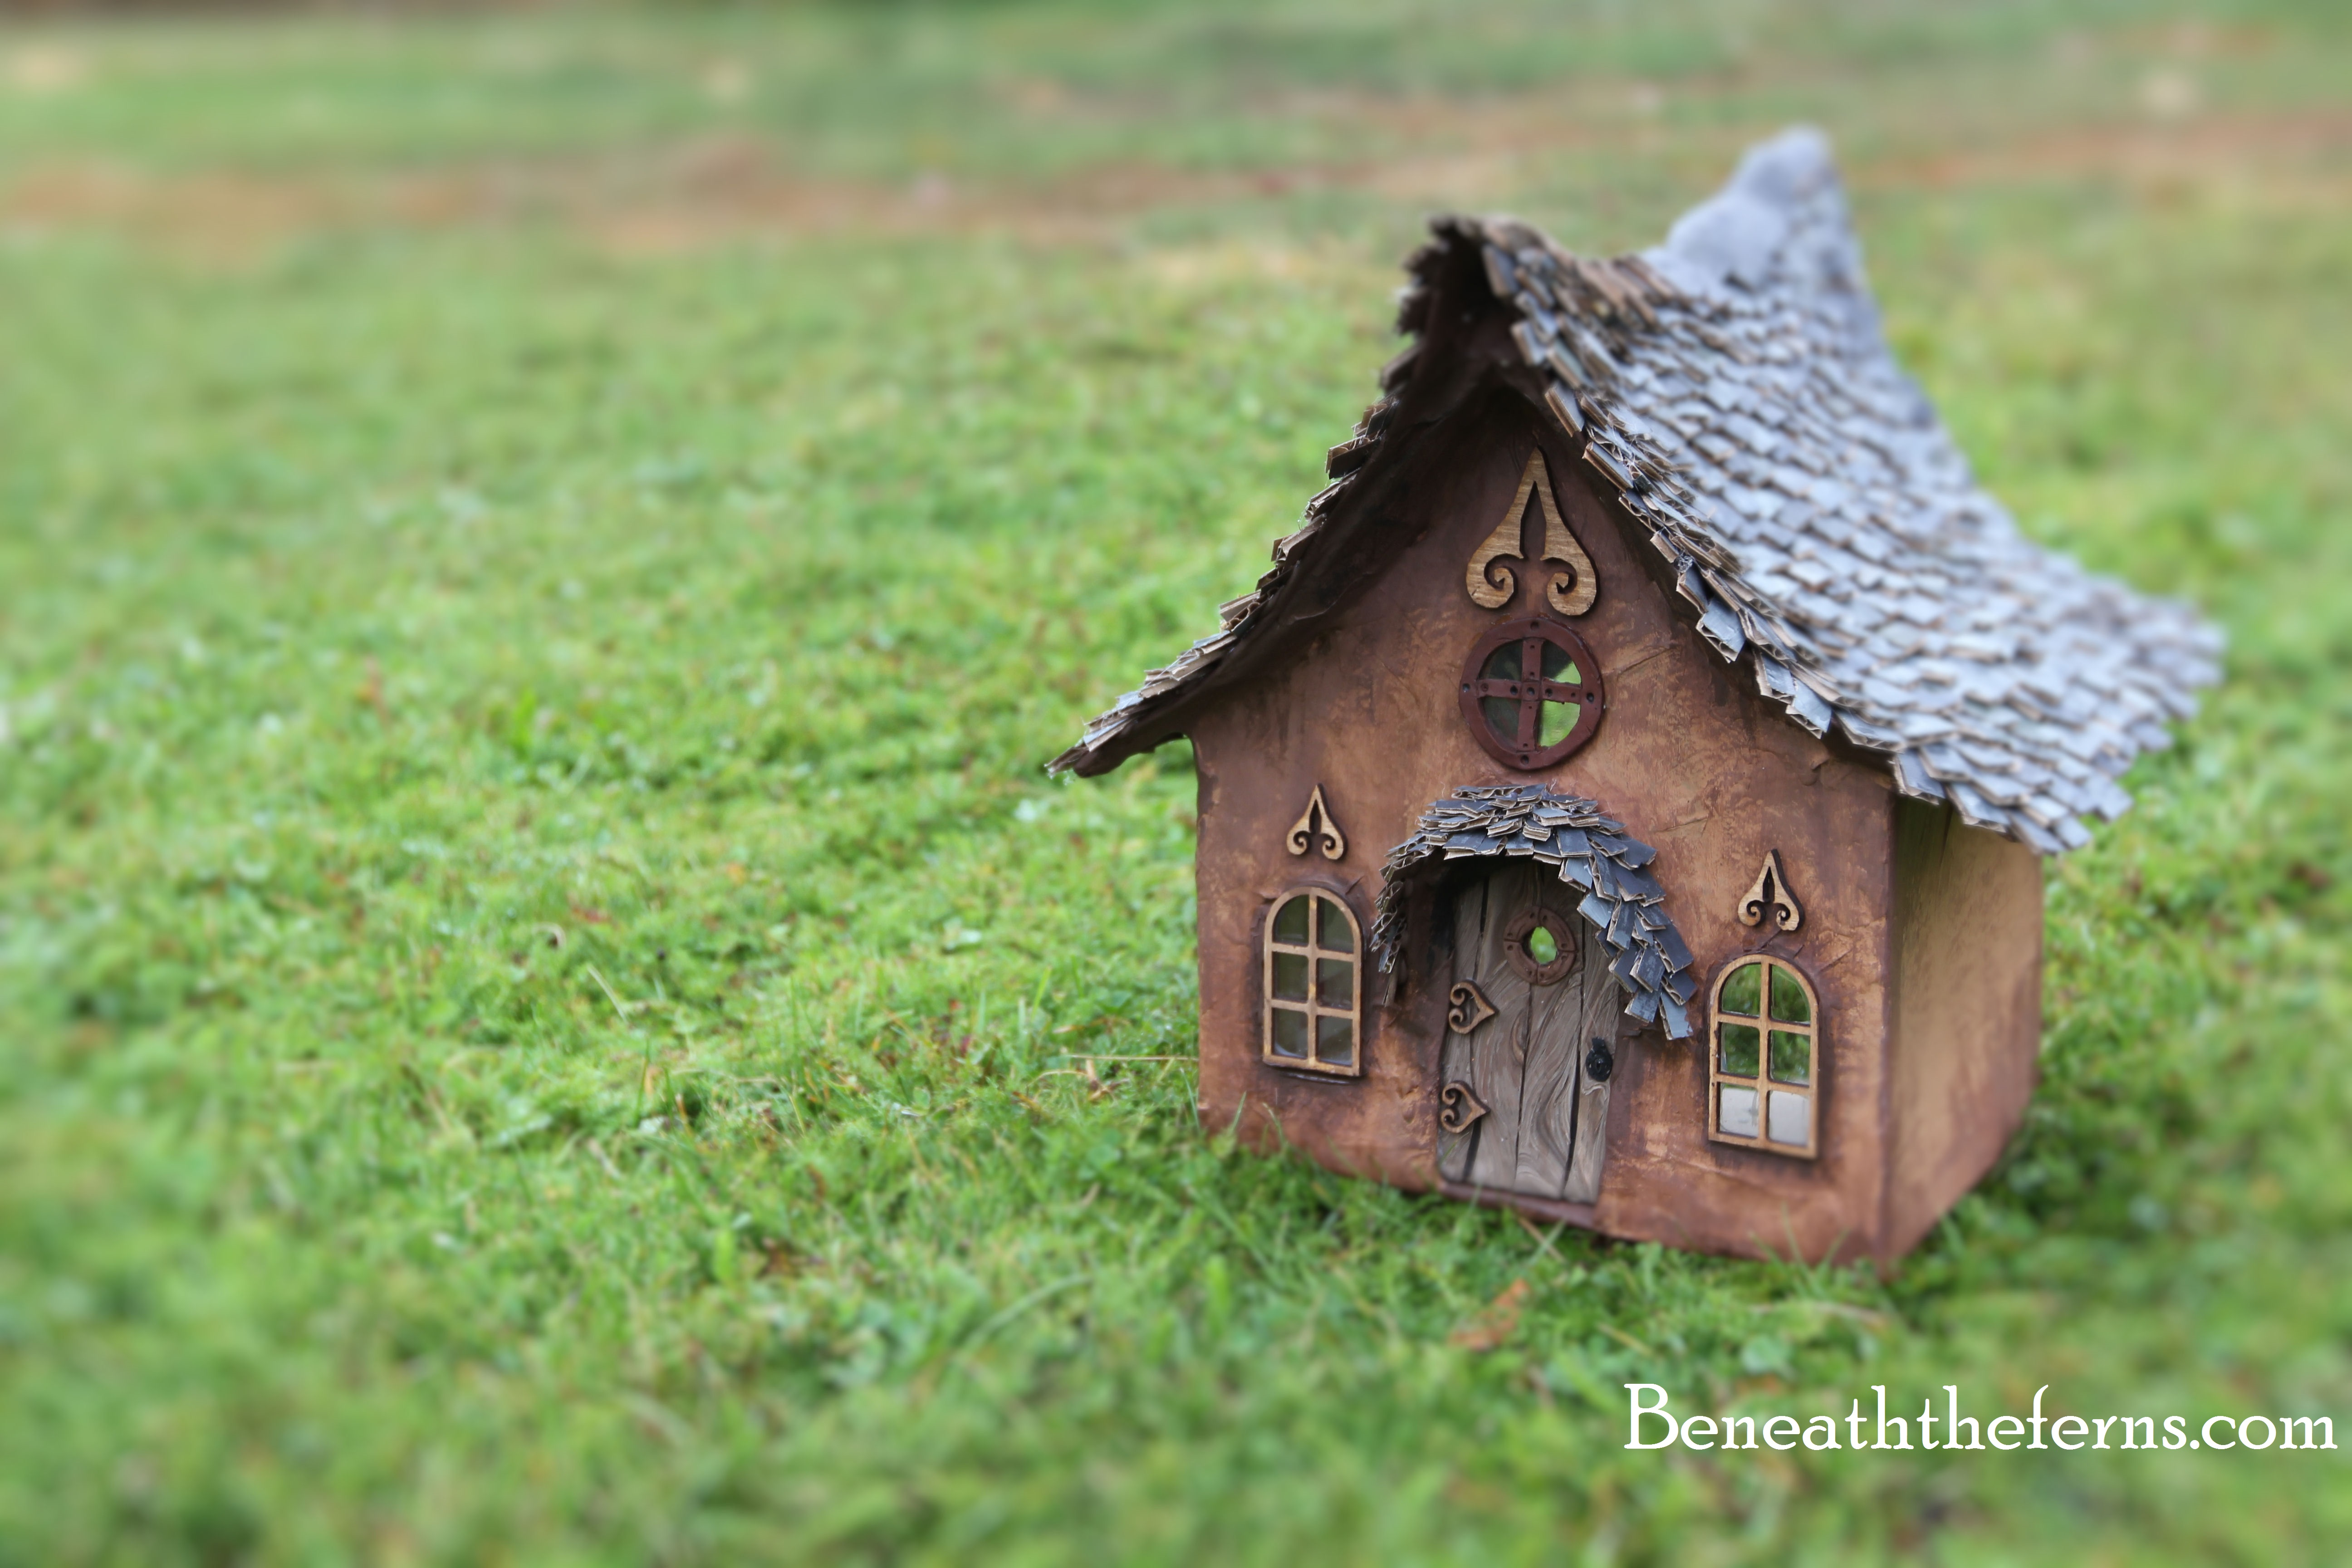 How to make a fairy house roof with shingles | Beneath the ferns